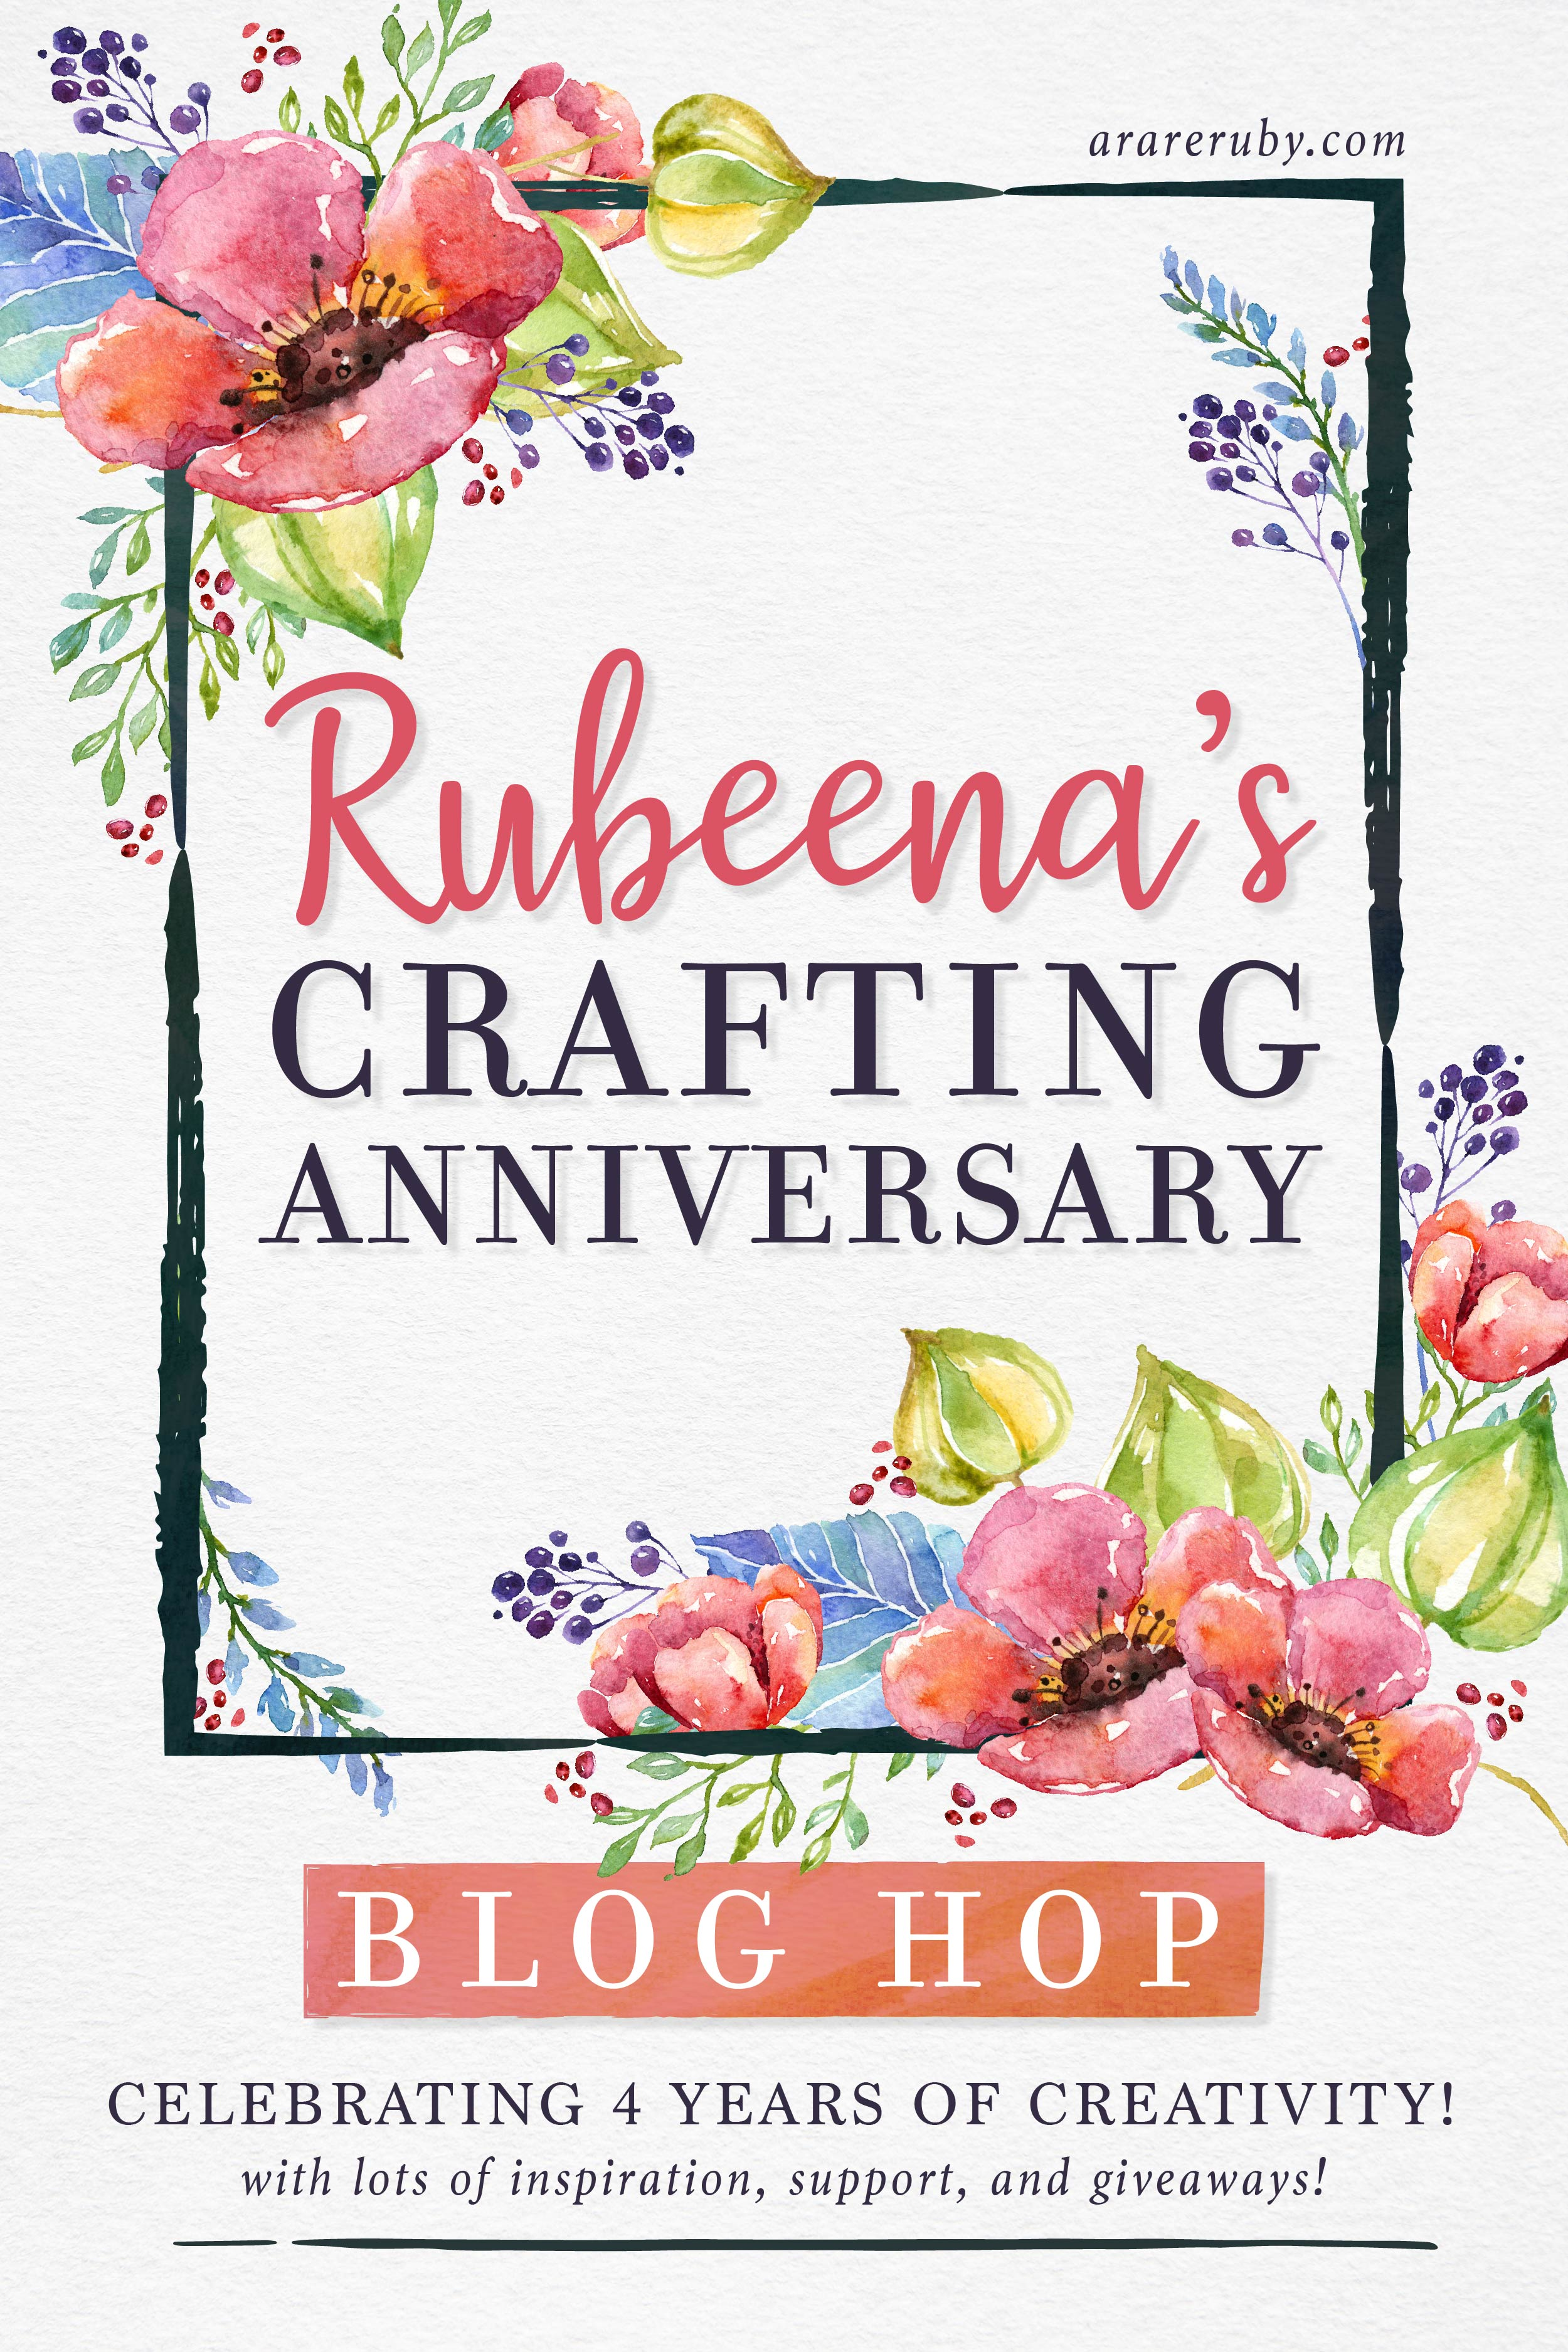 A Rare Ruby Crafting Anniversary Blog Hop Graphic